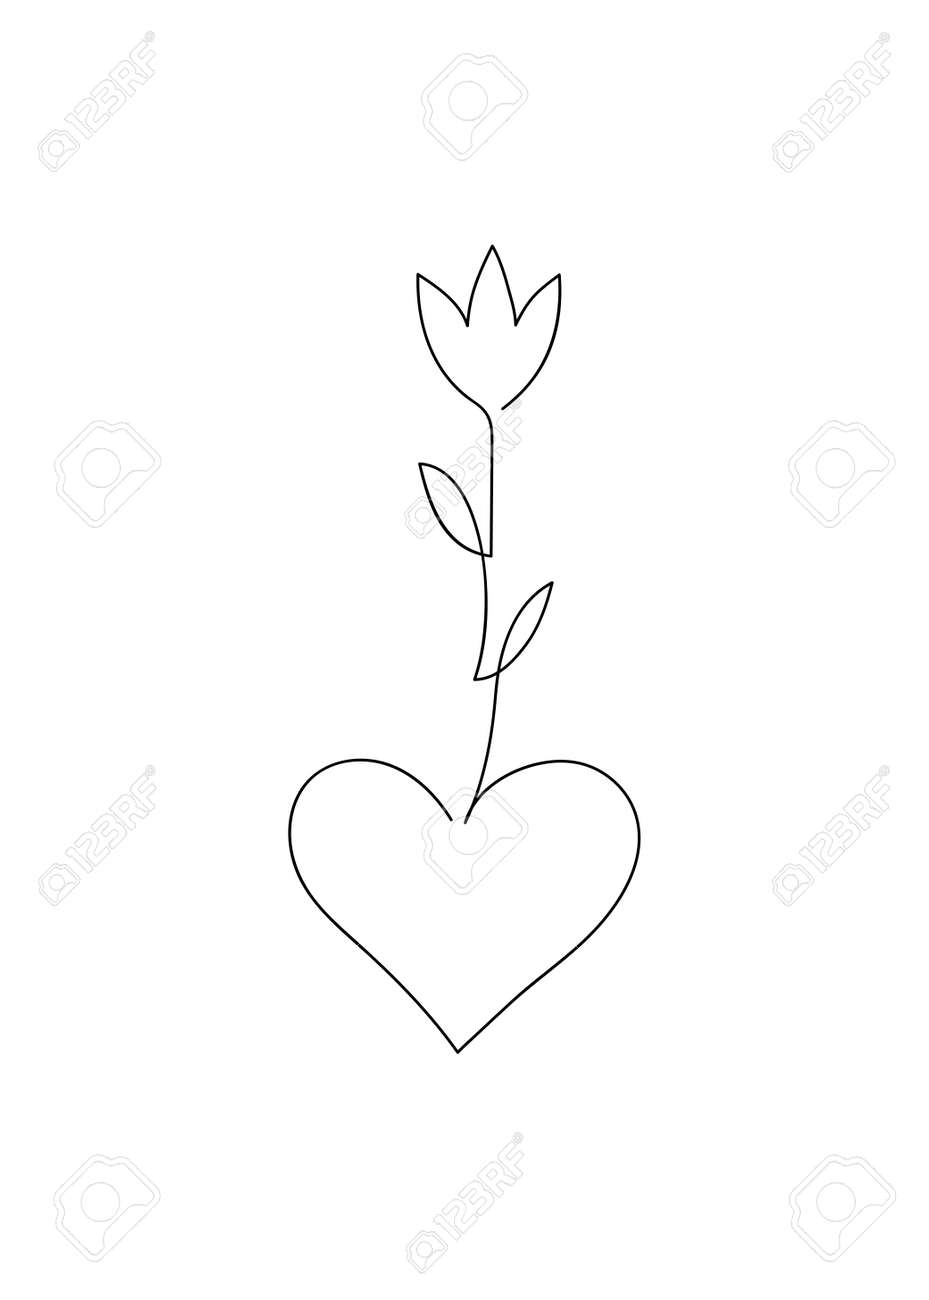 Heart and flower drawn with continuous thin black line - 171218277